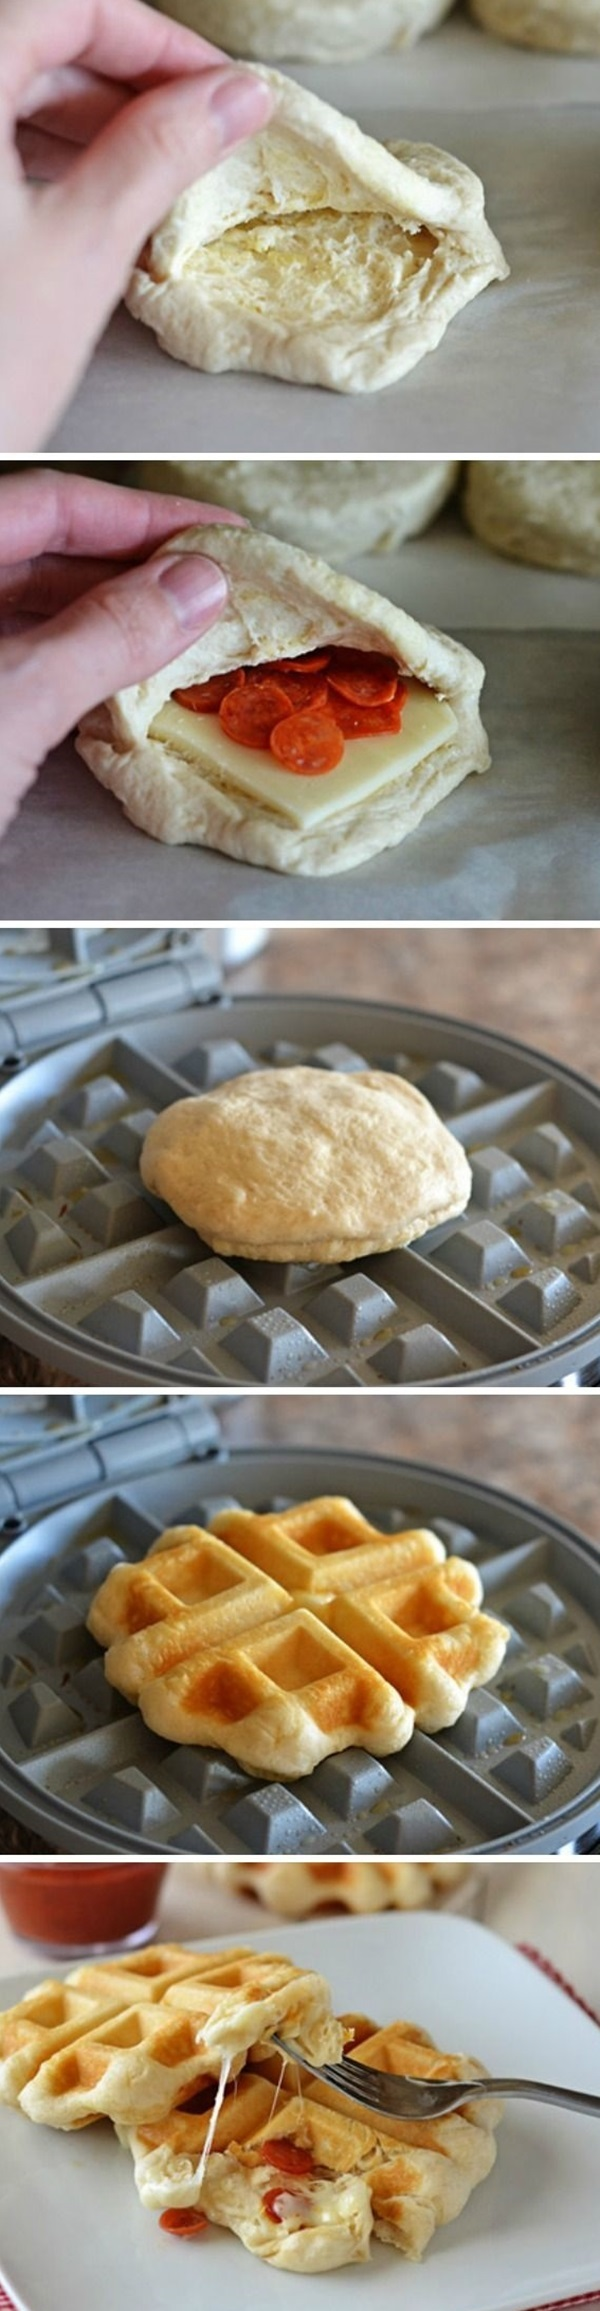 Clever Cooking Hacks (2)